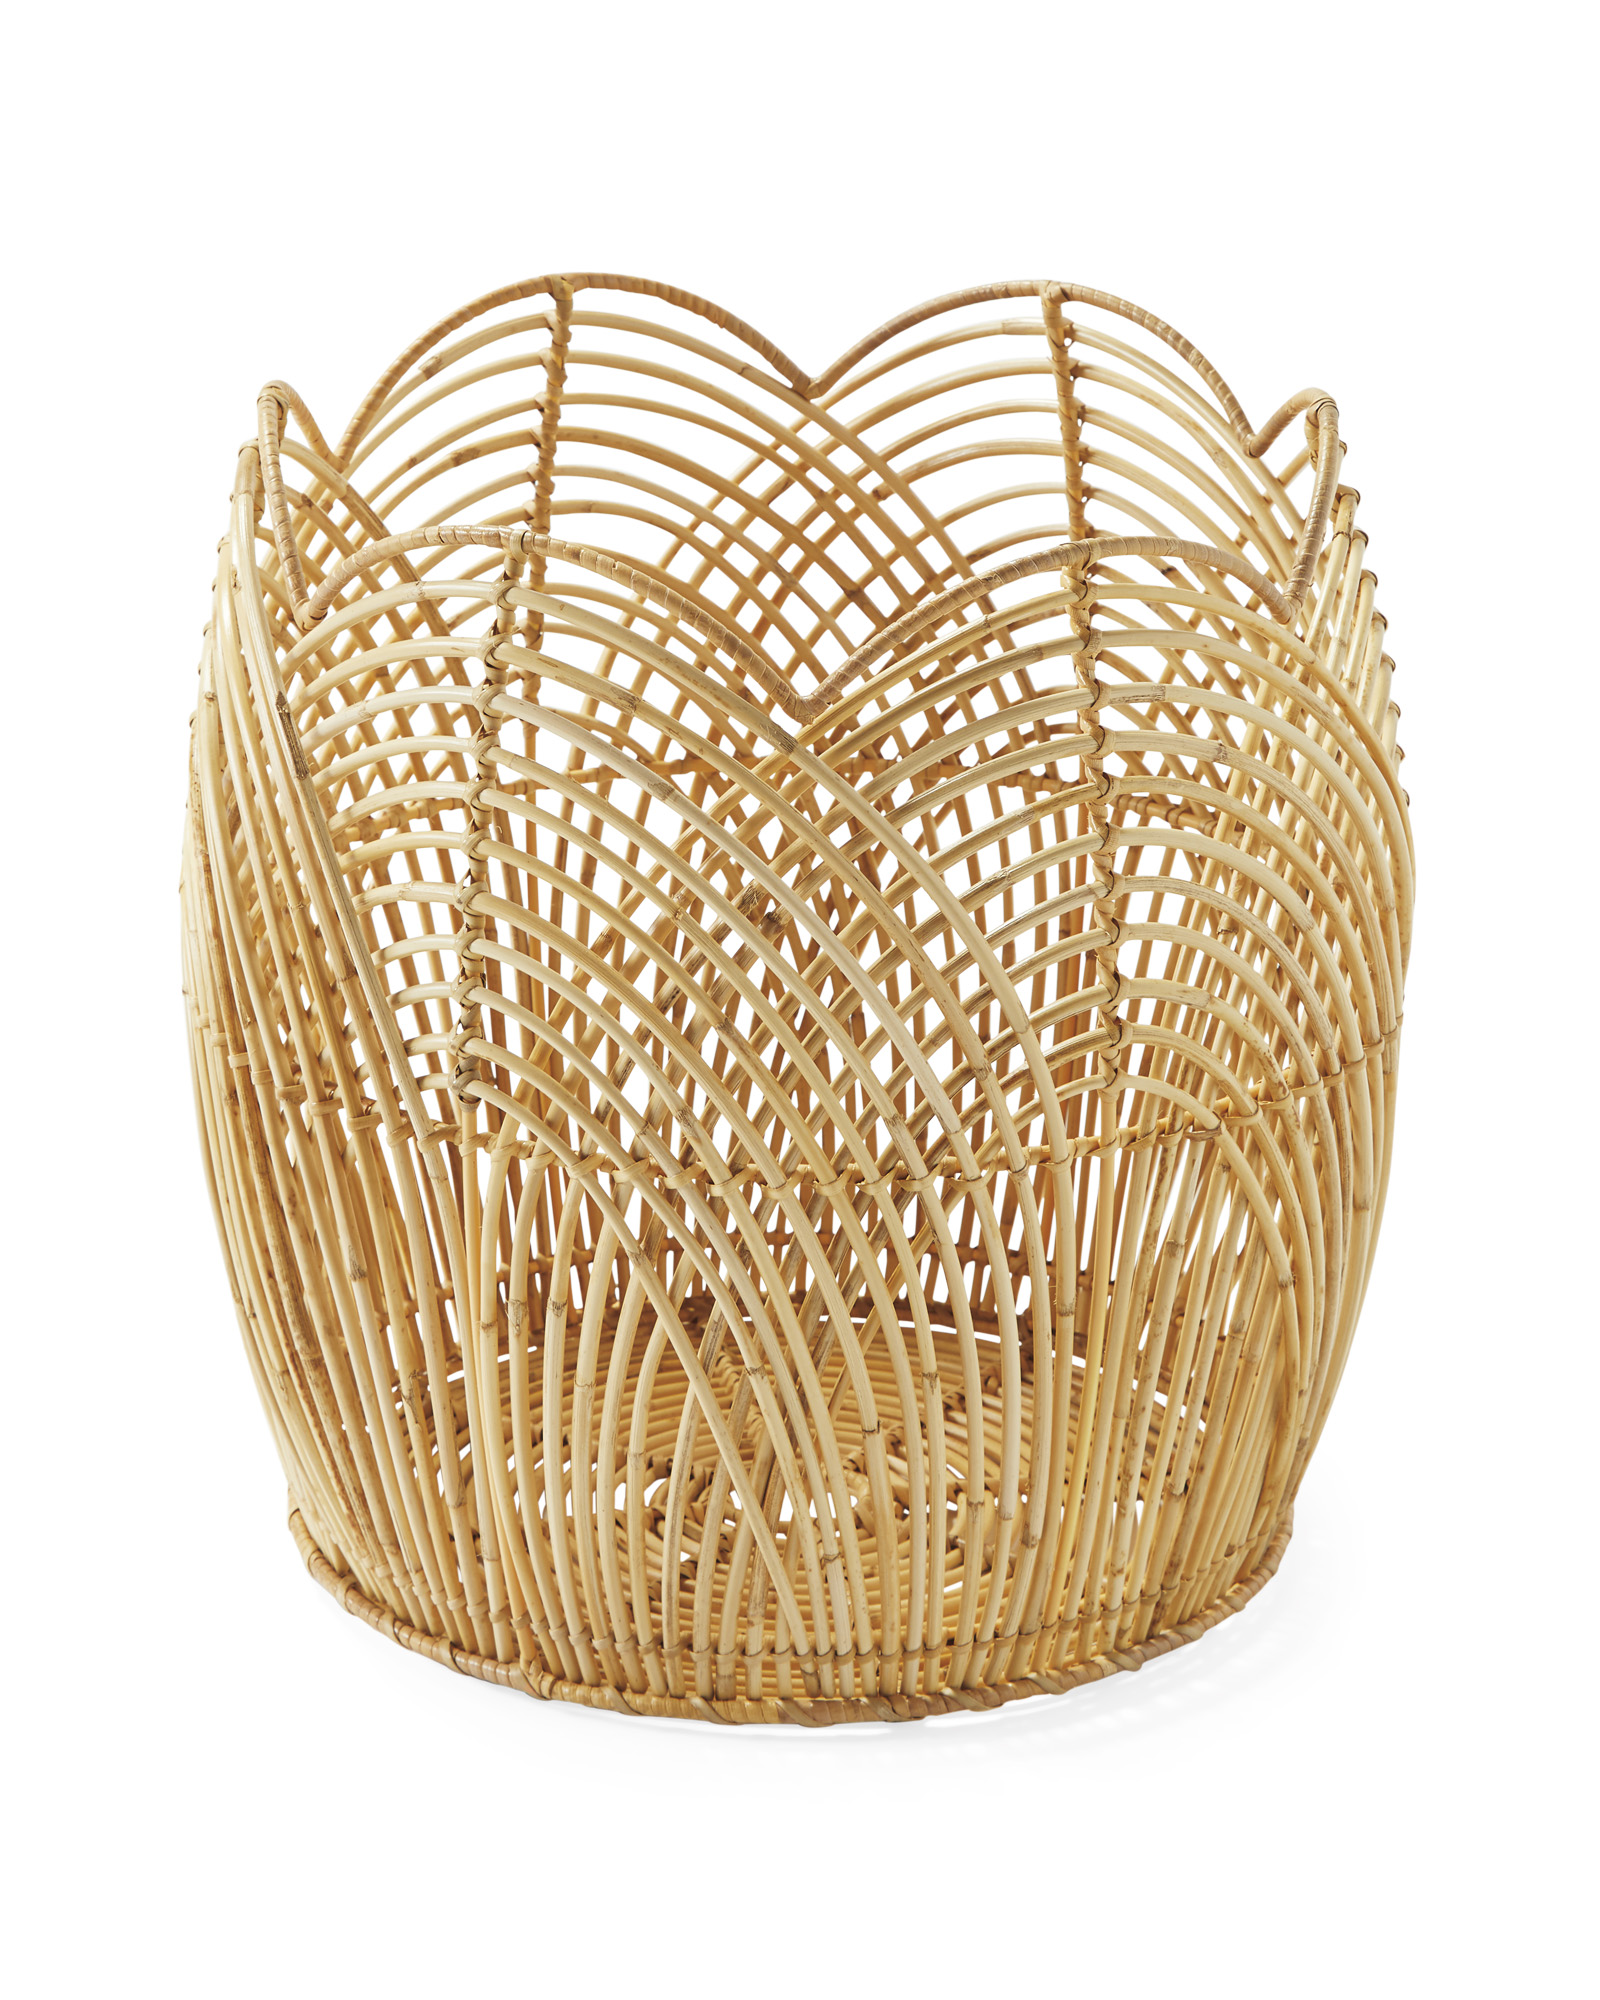 Summerwood Basket,